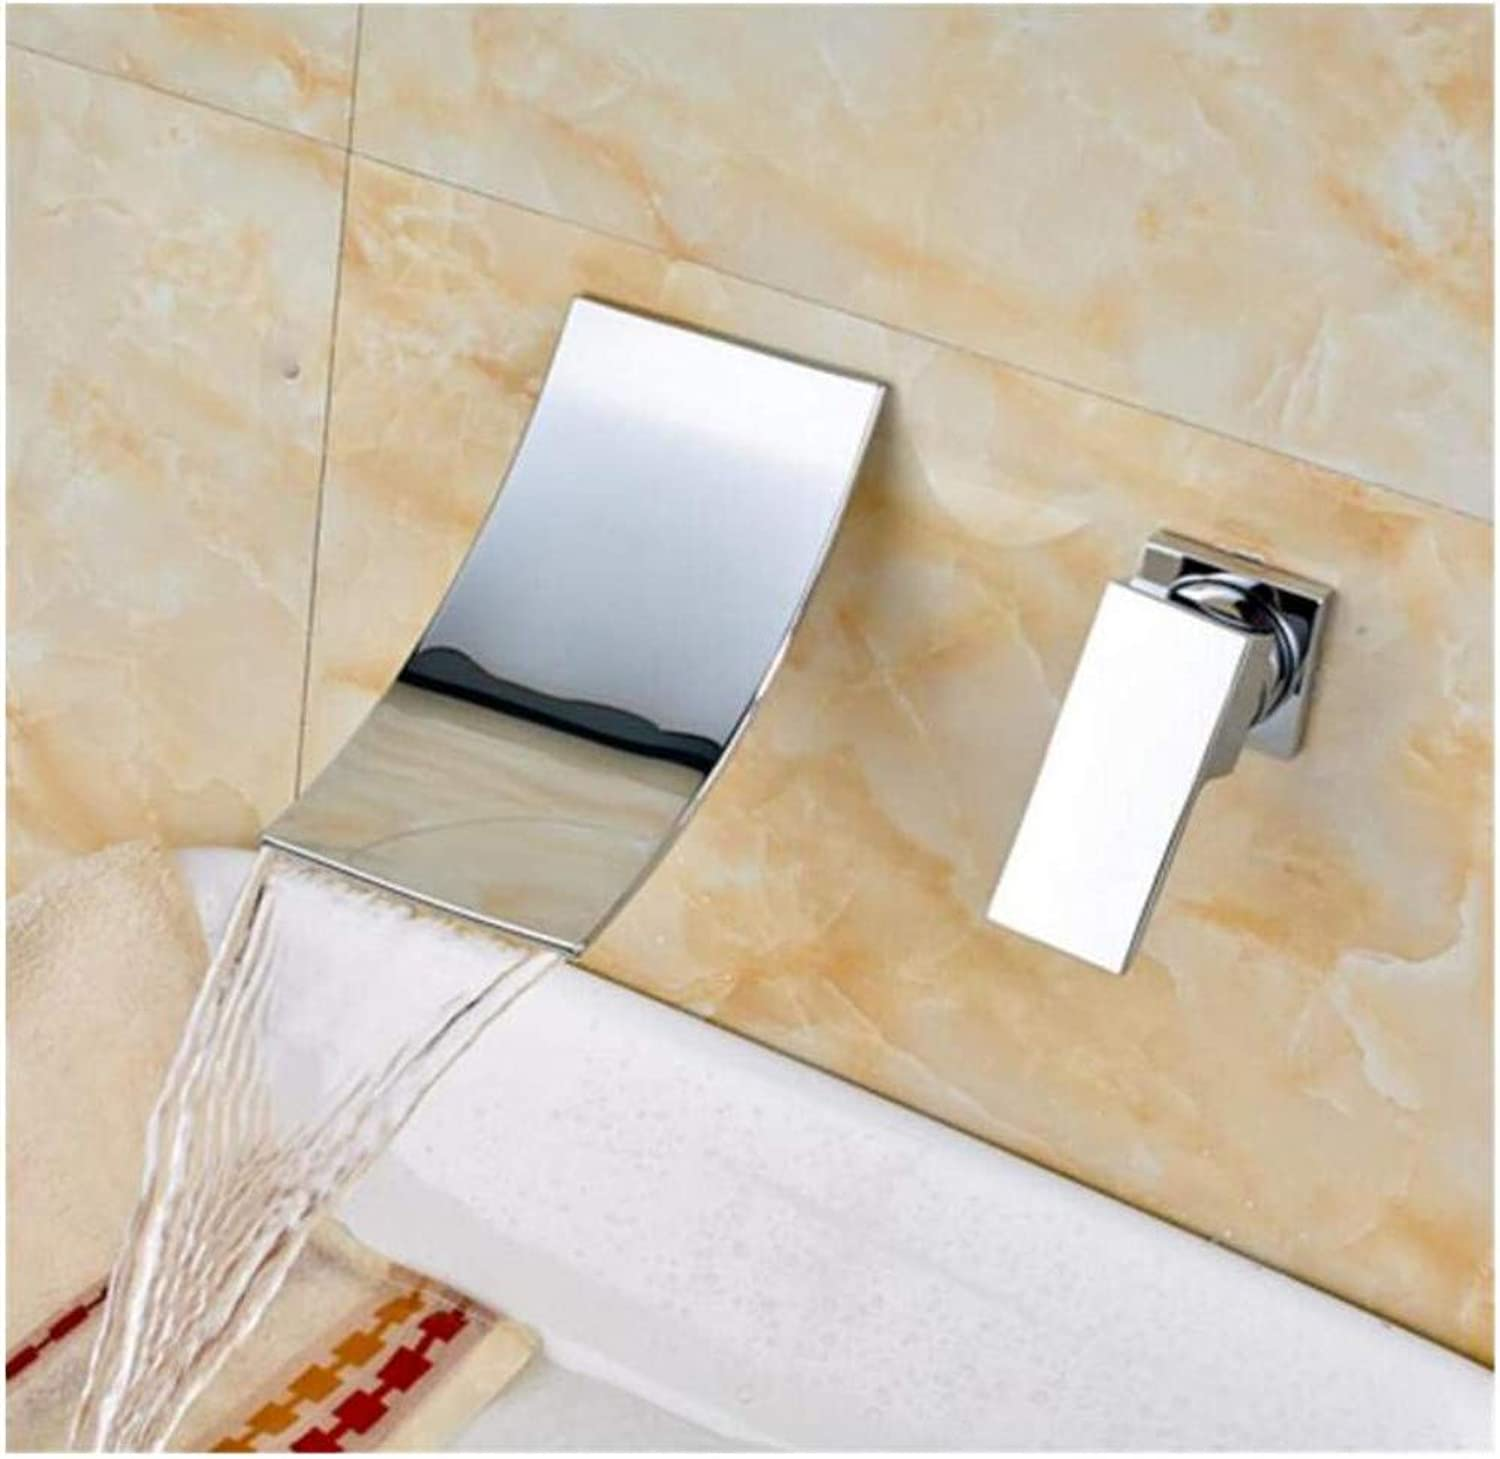 Brass Wall Faucet Chrome Brass Faucettap Deck Mounted Waterfall Bathroom Mixer Crane Taps